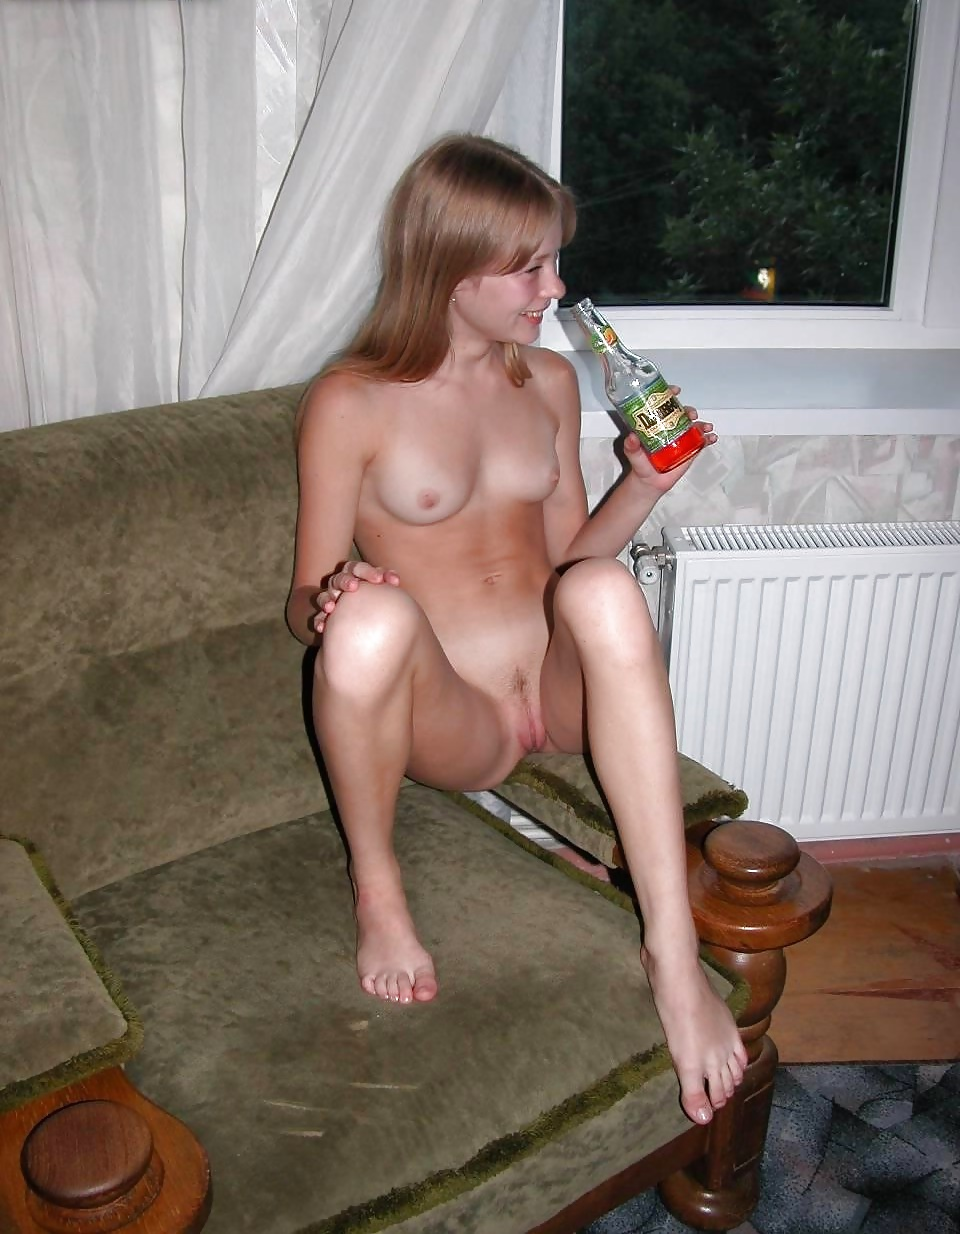 Nude Drunk Girls Photo